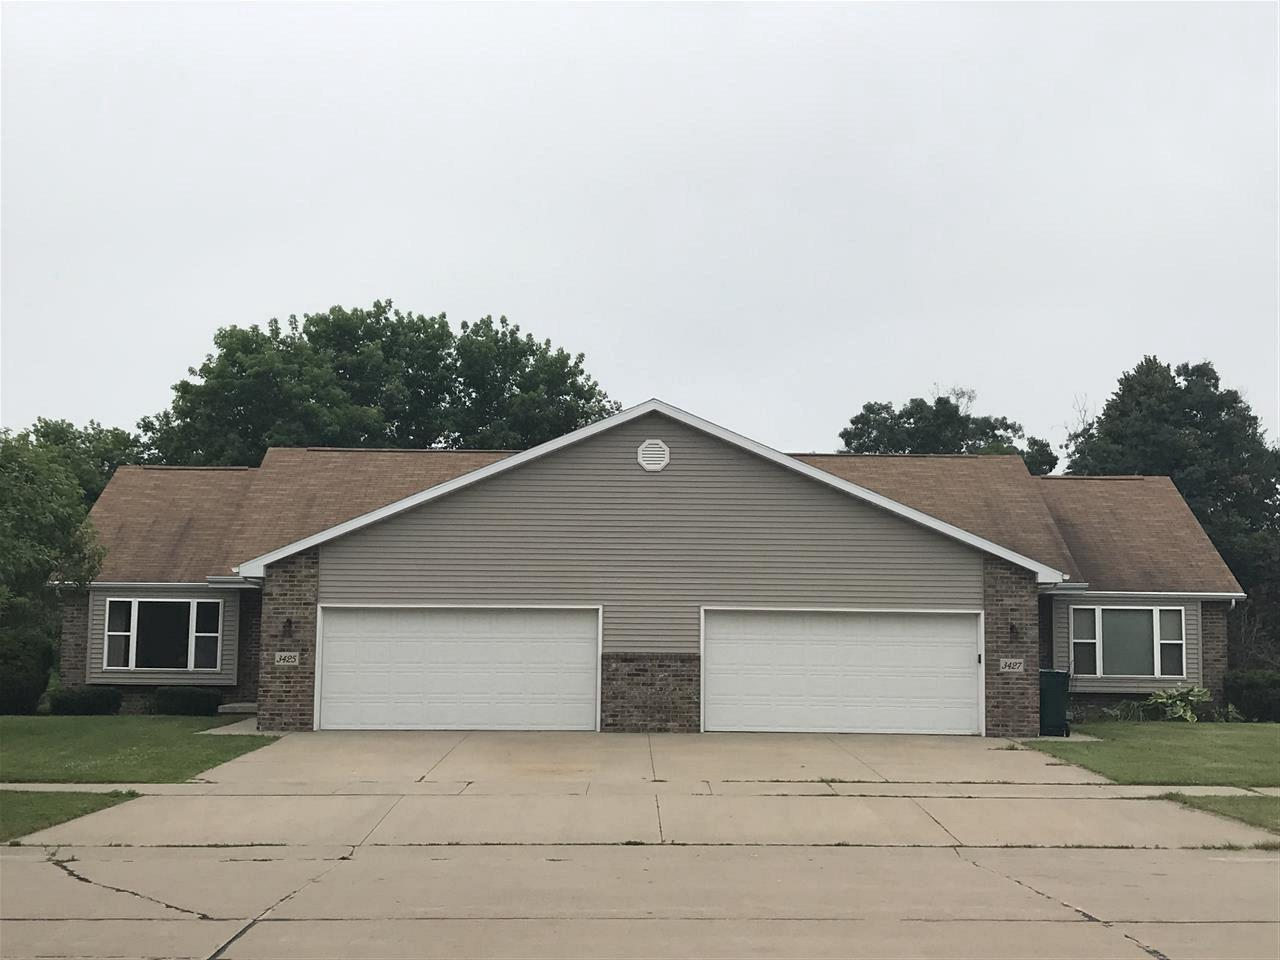 3425 N TERRI LANE LANE, GRAND CHUTE, WI 54914